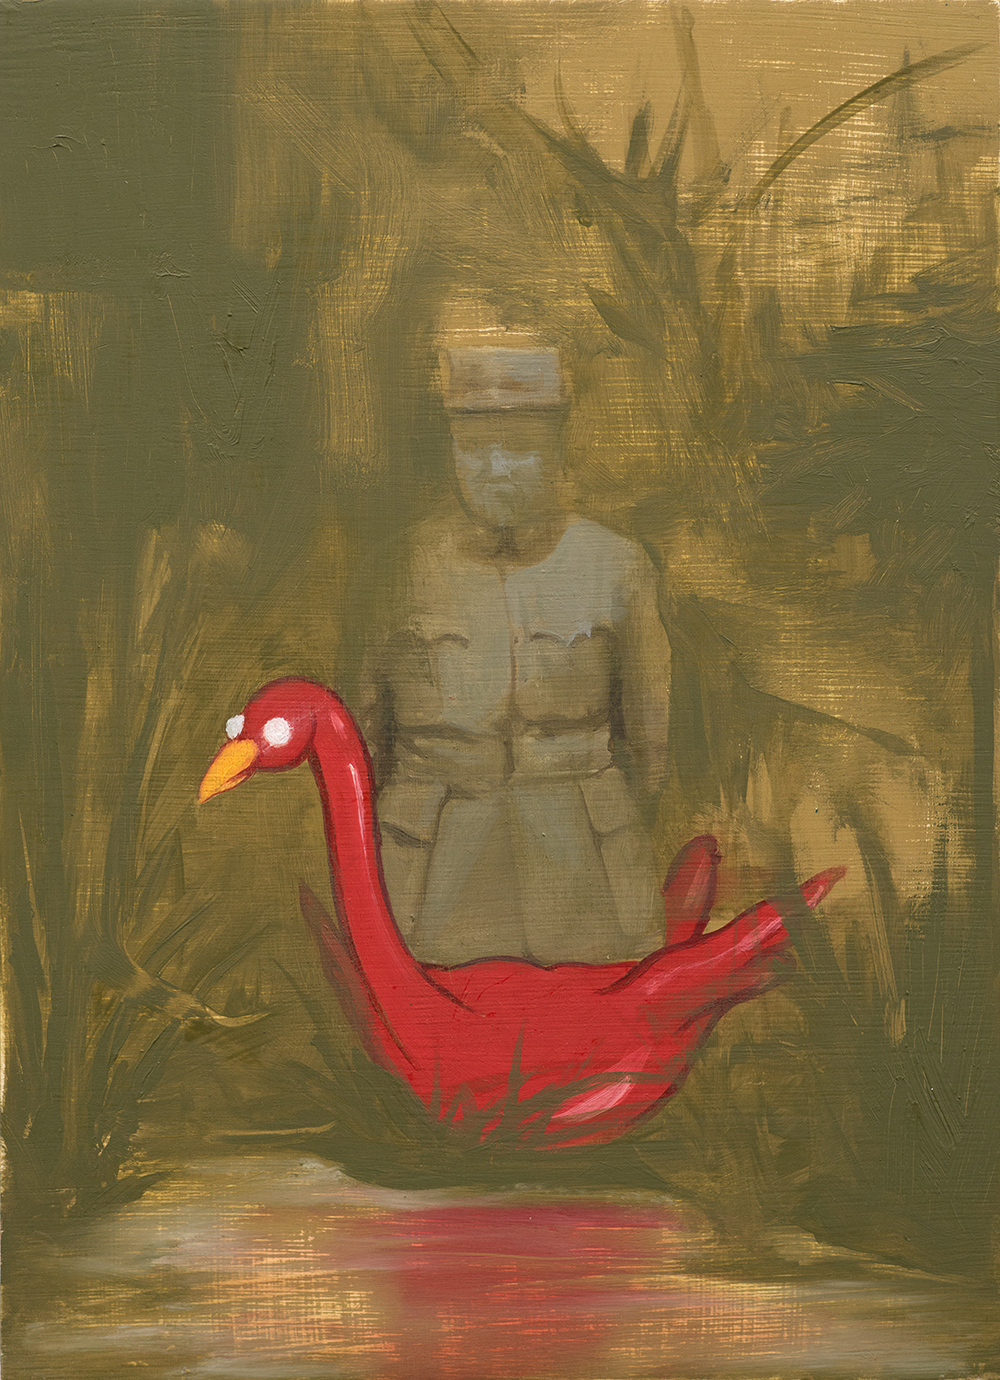 Officer with Duck, Oil on Wood, 29x21cm, 2014